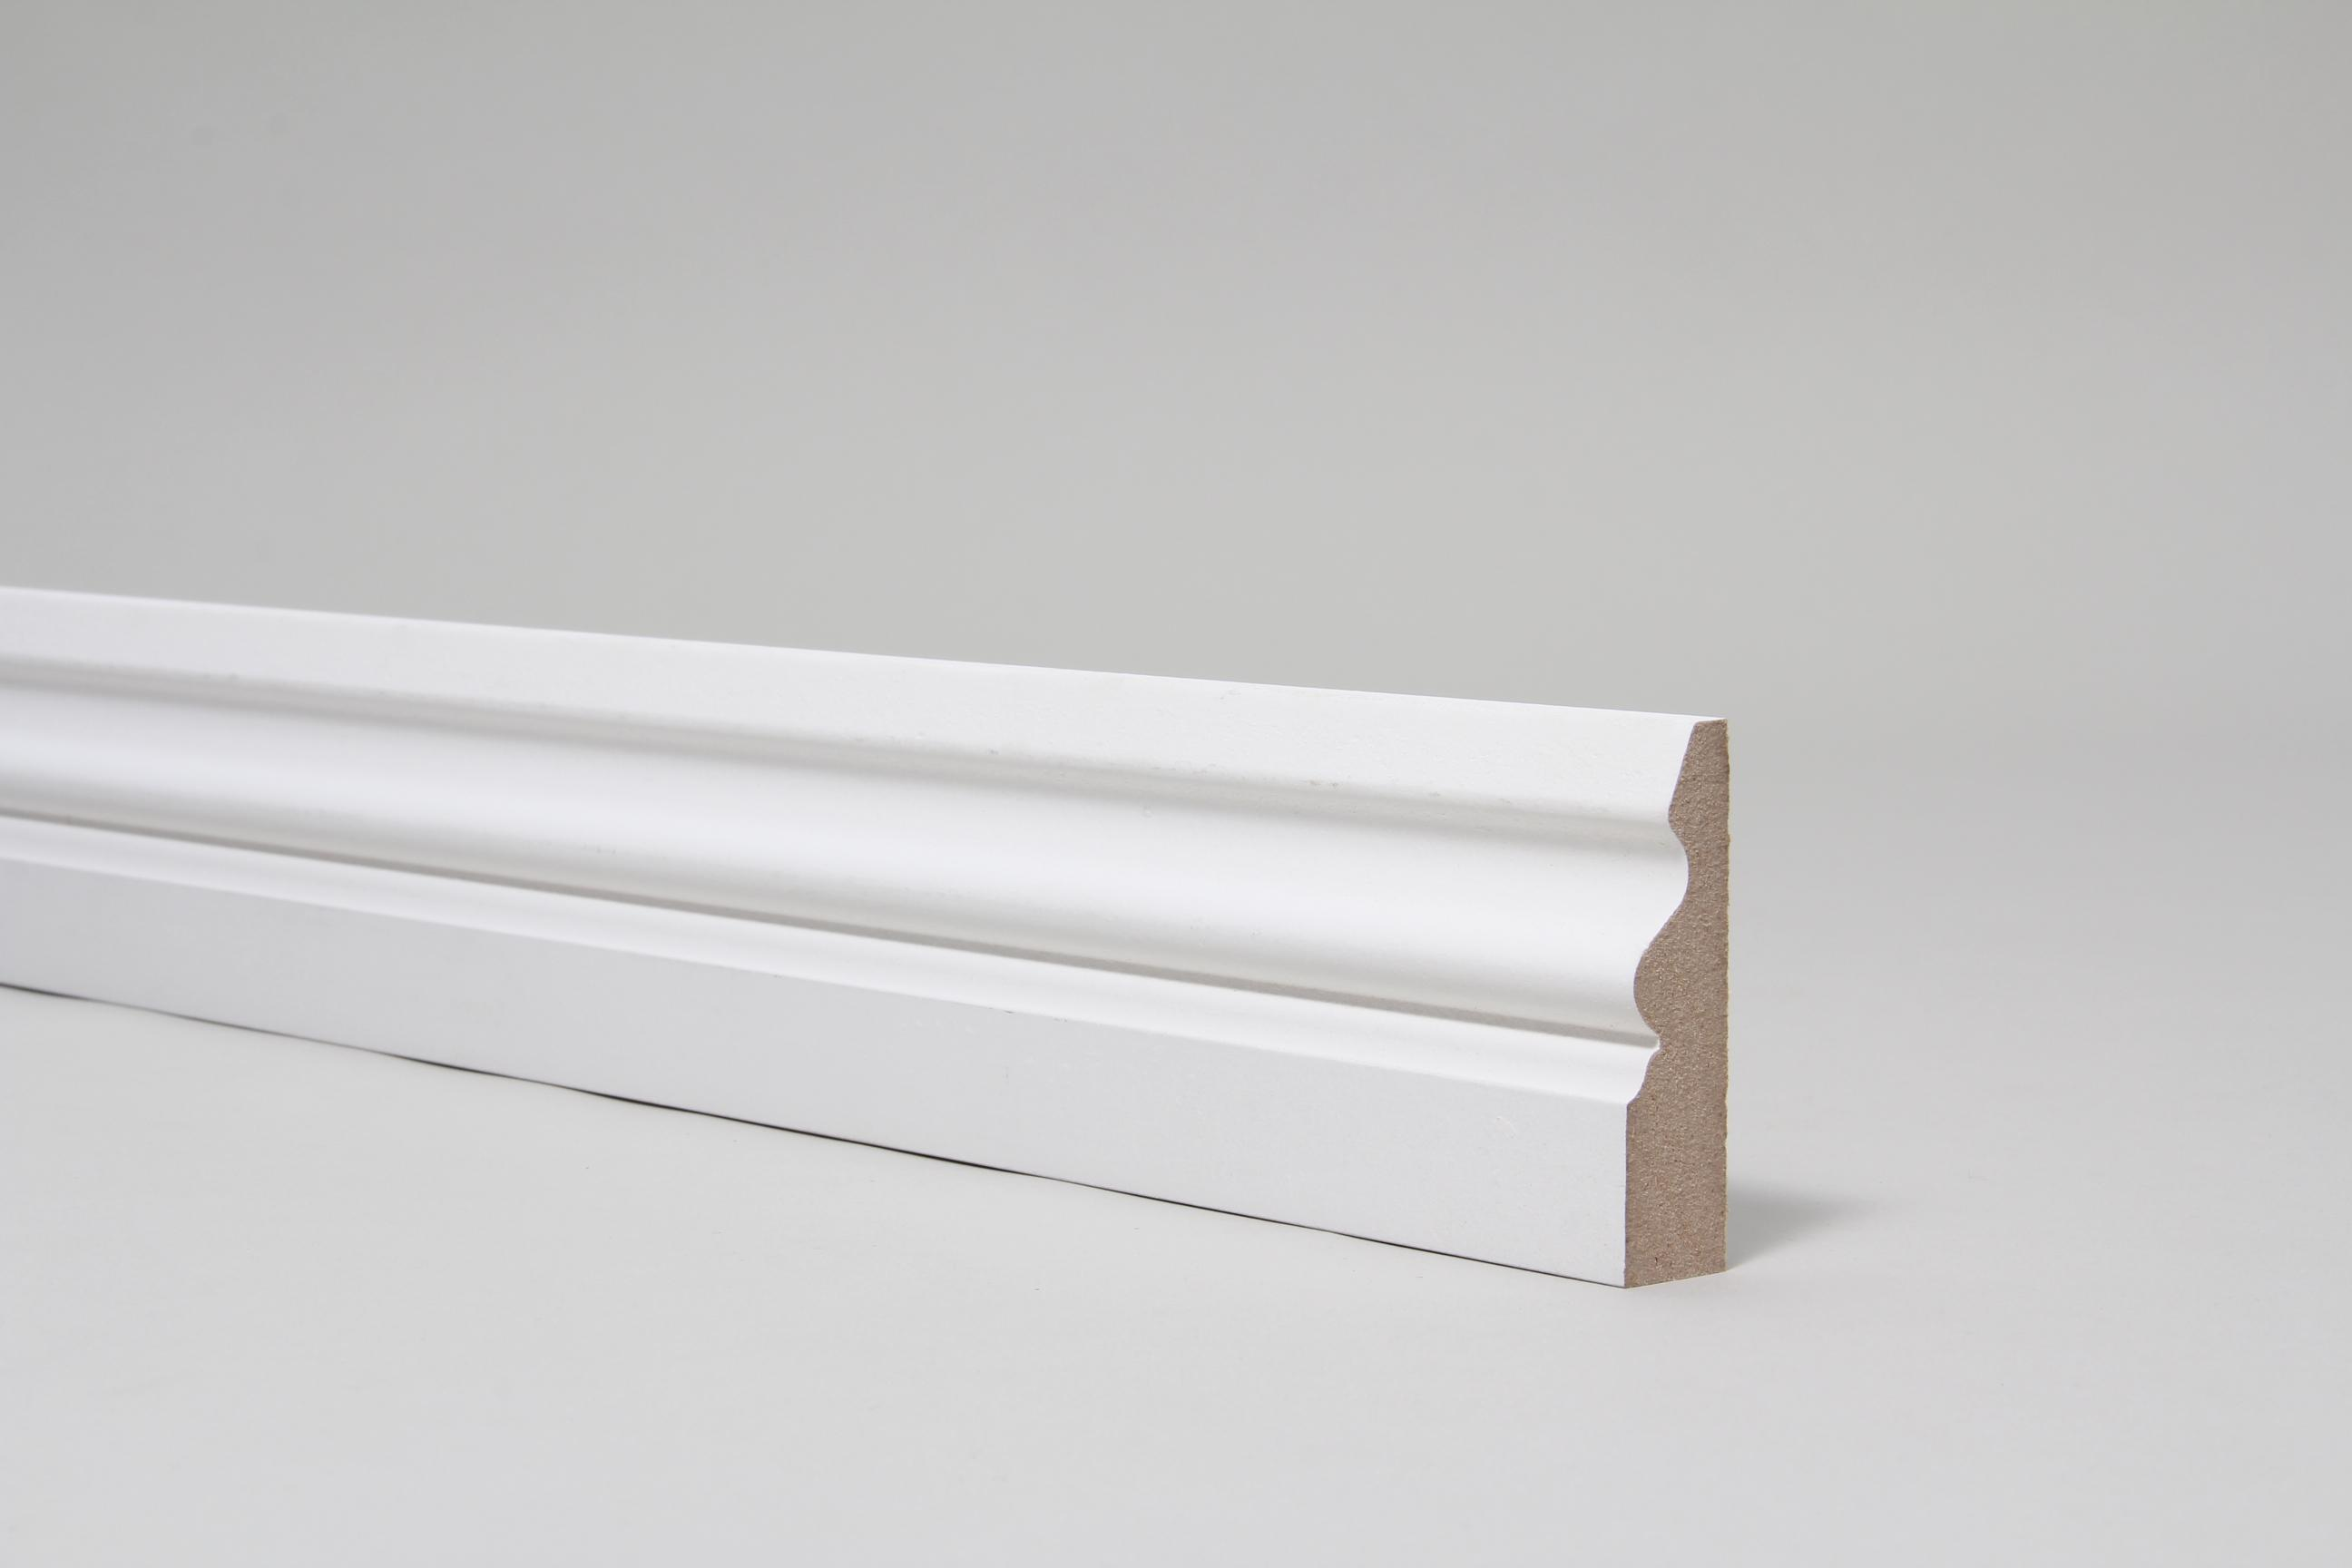 Ogee Pattern 4 18mm x 68mm Architrave Set Primed